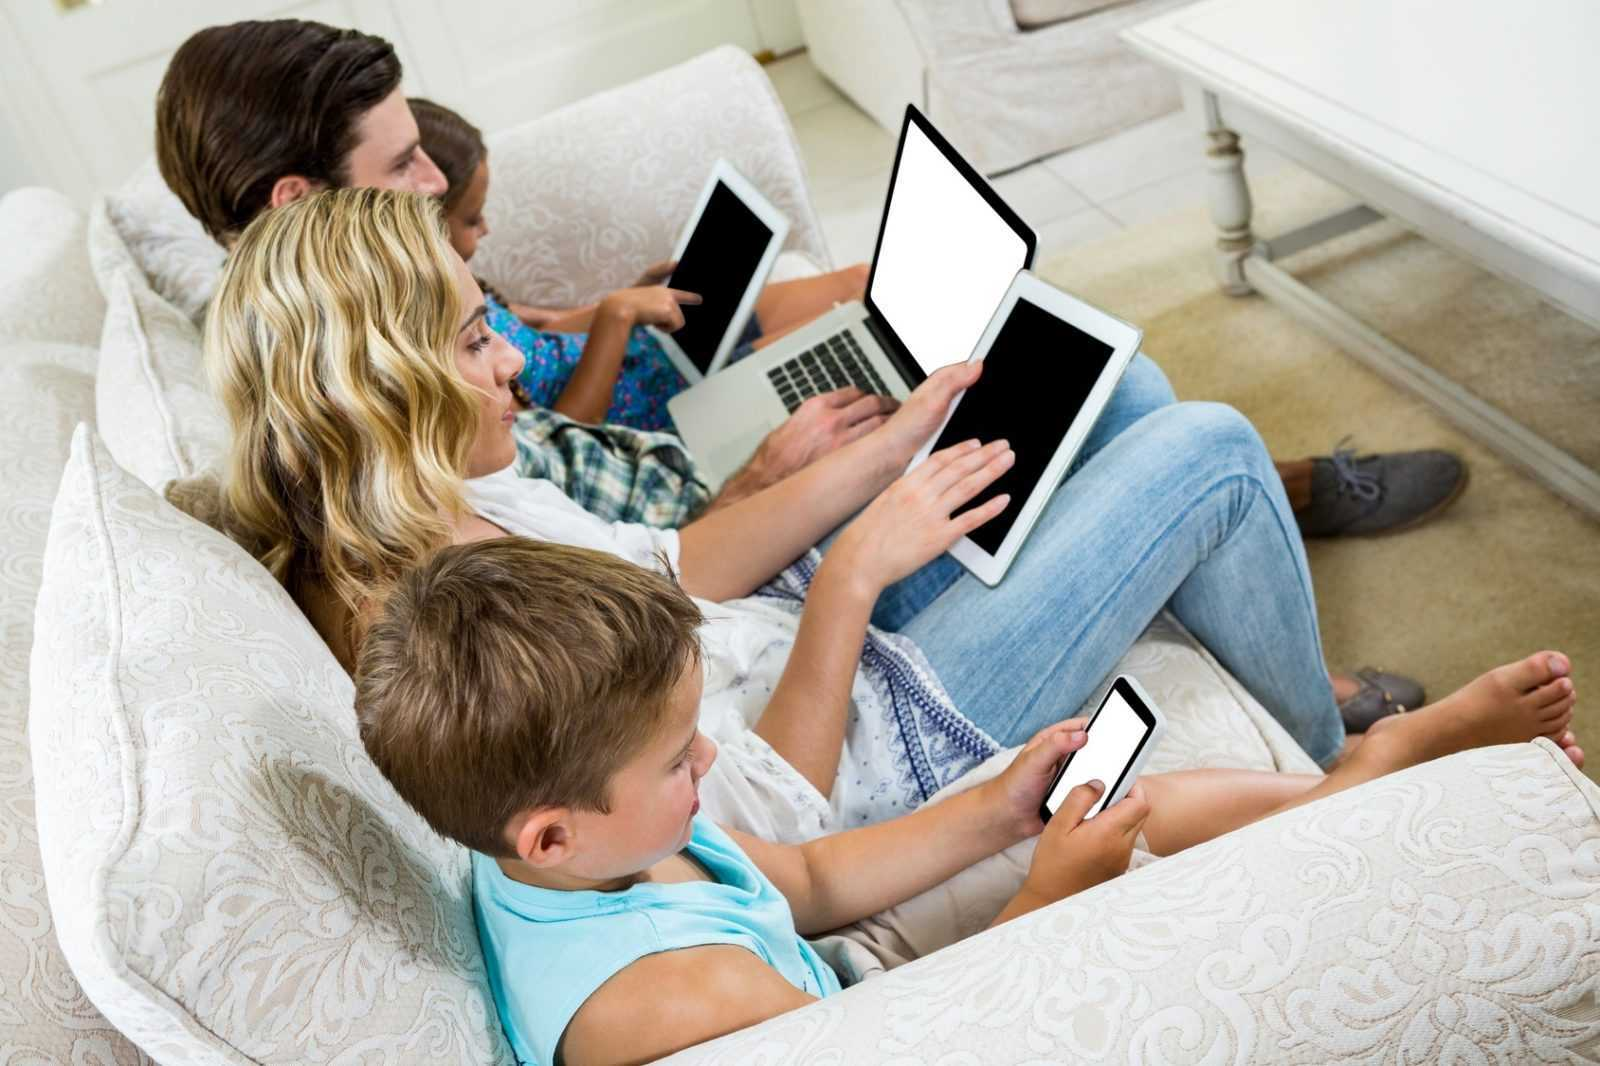 A Digital Detox - Has Your Family Tried It?